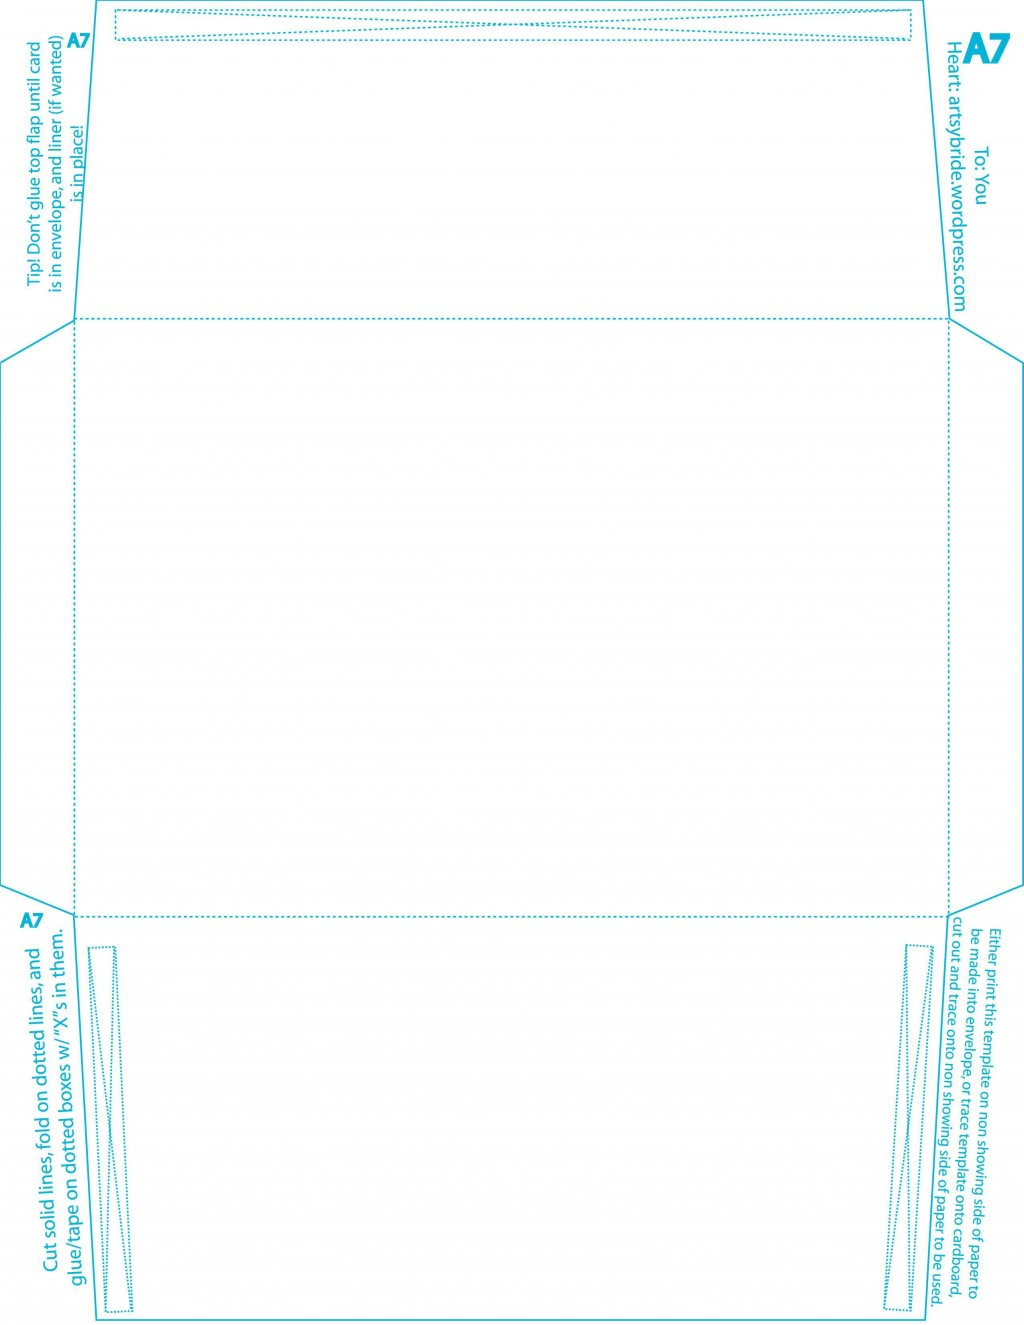 005 Formidable A7 Envelope Liner Template Square Flap Picture Large